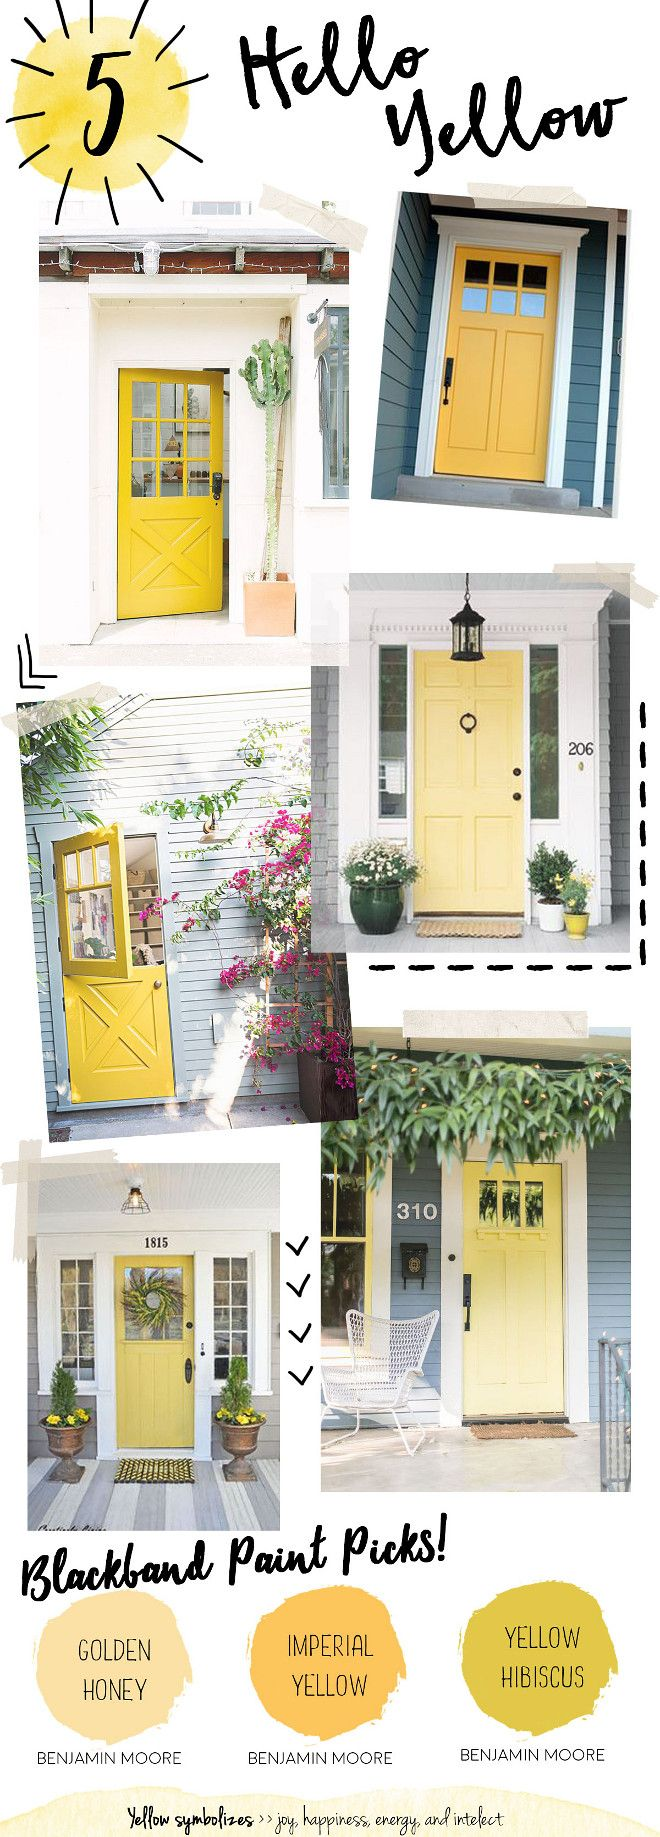 Yellow Door Paint Color. Yellow Front Door Paint Color. Benjamin Moore Golden Honey. Benjamin Moore Imperial Yellow. Benjamin…